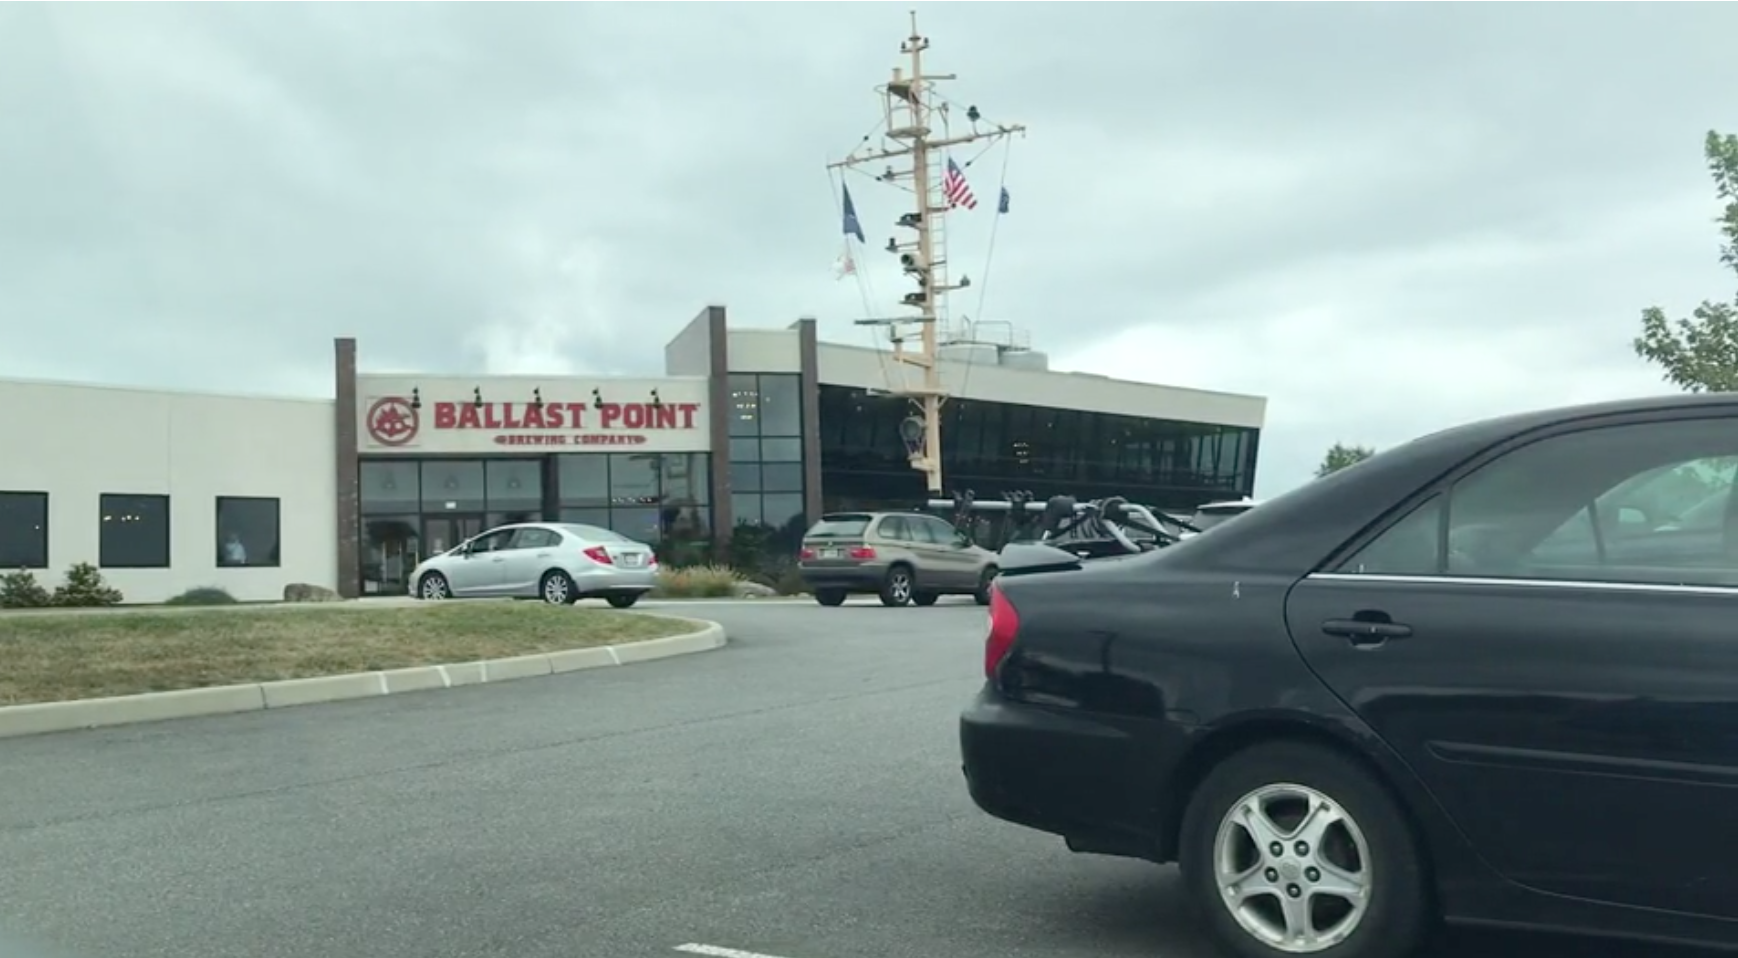 It was announced Tuesday, Sept. 10, that the Ballast Point Restaurant and Tasting Room in Daleville would close at the end of September. (Photo: Aaron Thompson/WFXR News)